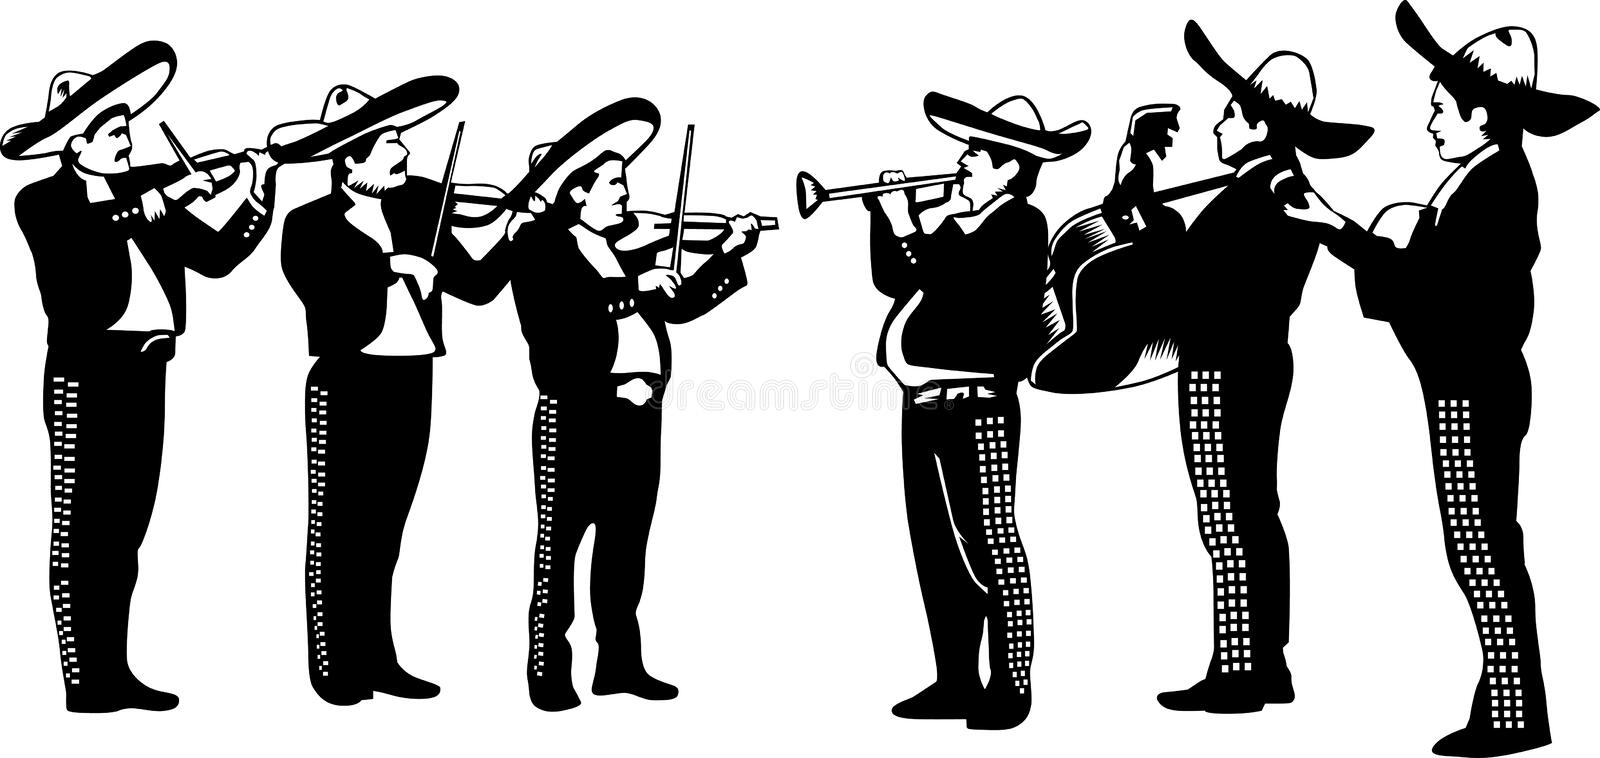 Mariachi cartoon playing trumpet. A black and white drawing of a mariachi band vector illustration